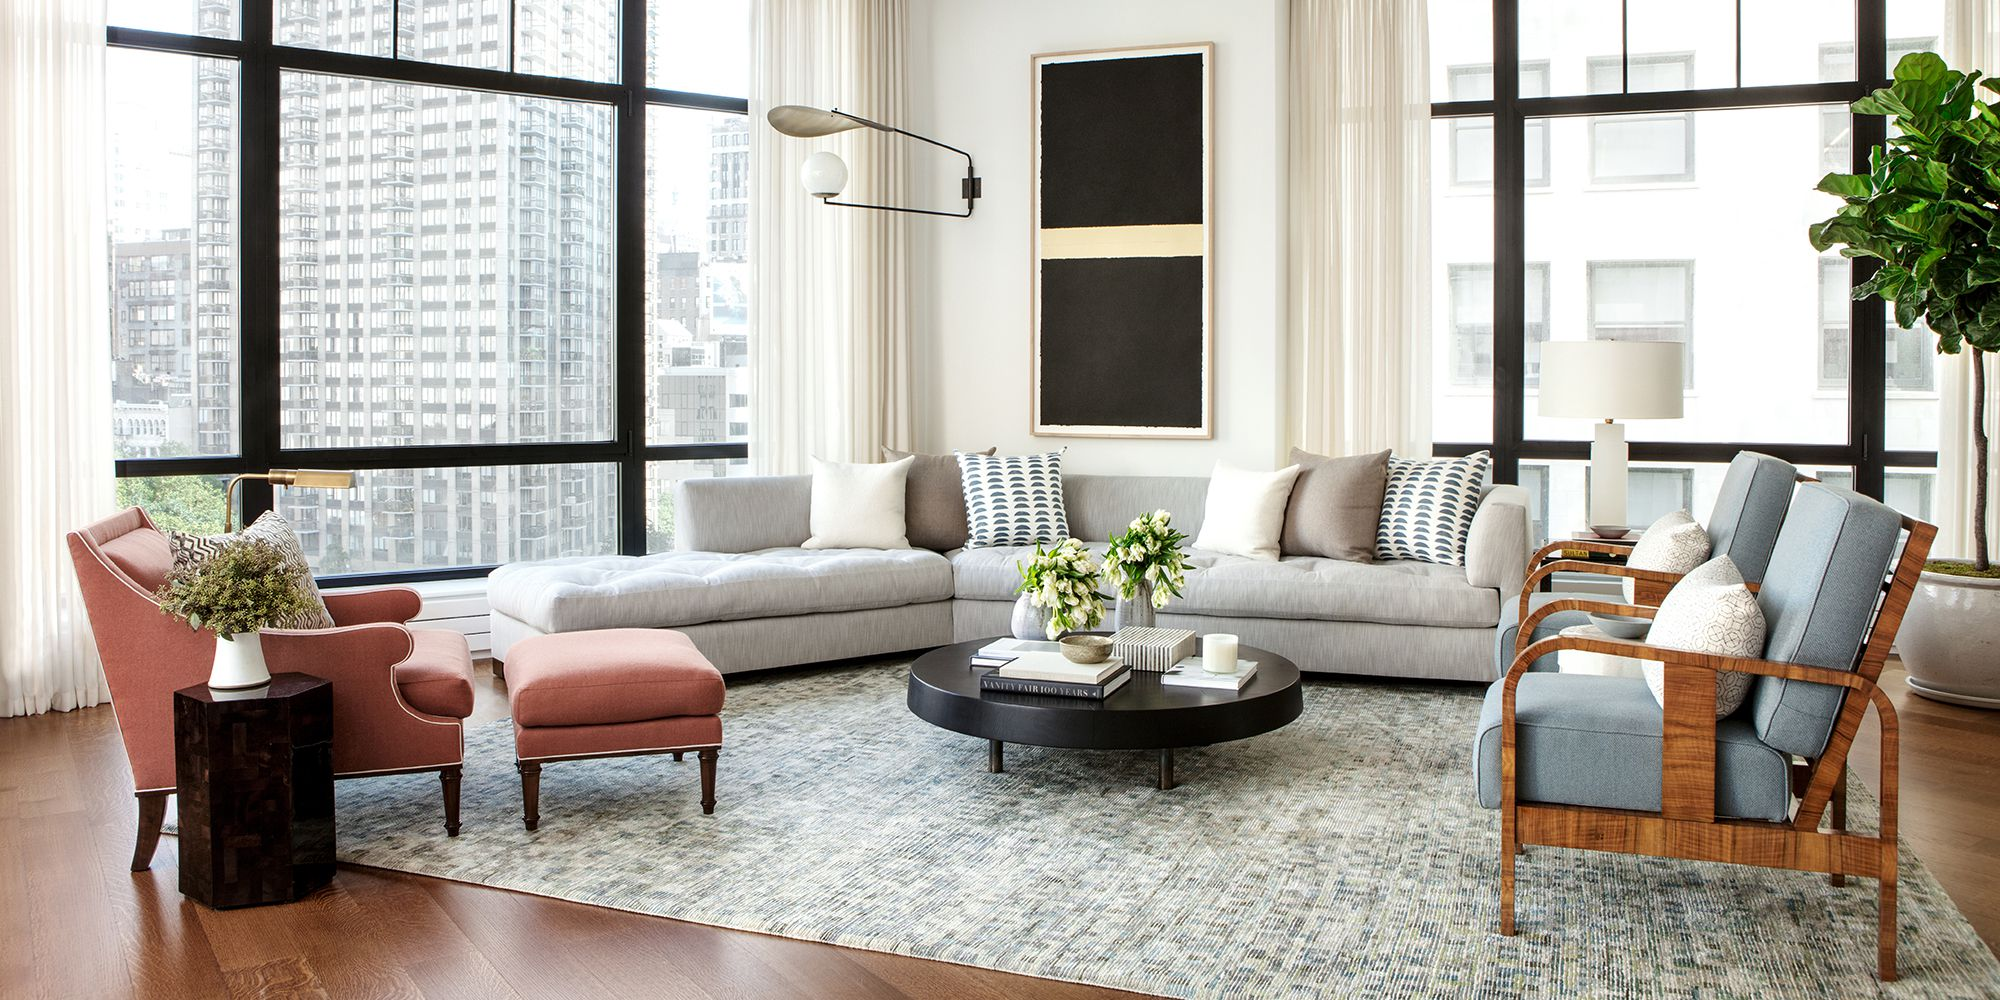 30 Living Room Furniture Layout Ideas - How to Arrange Seating in a